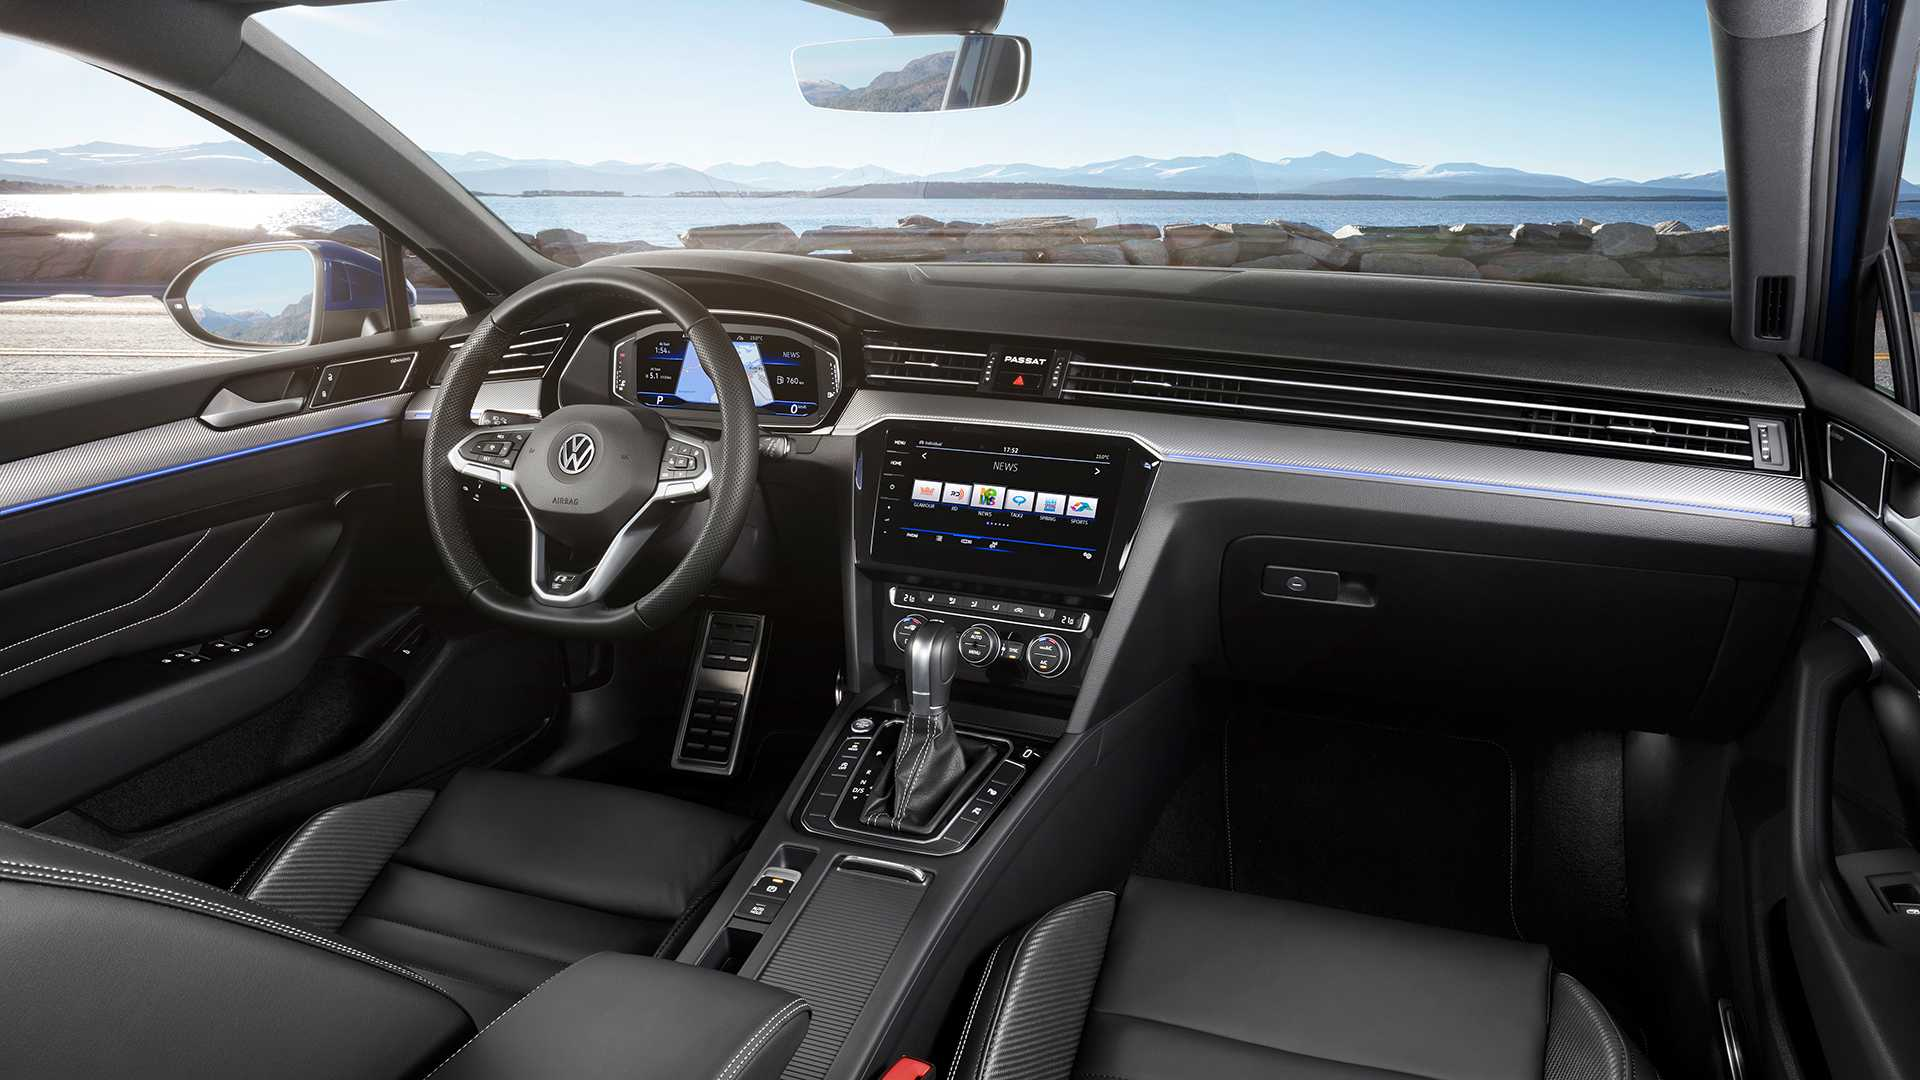 80 The 2019 Volkswagen Passat Interior First Drive